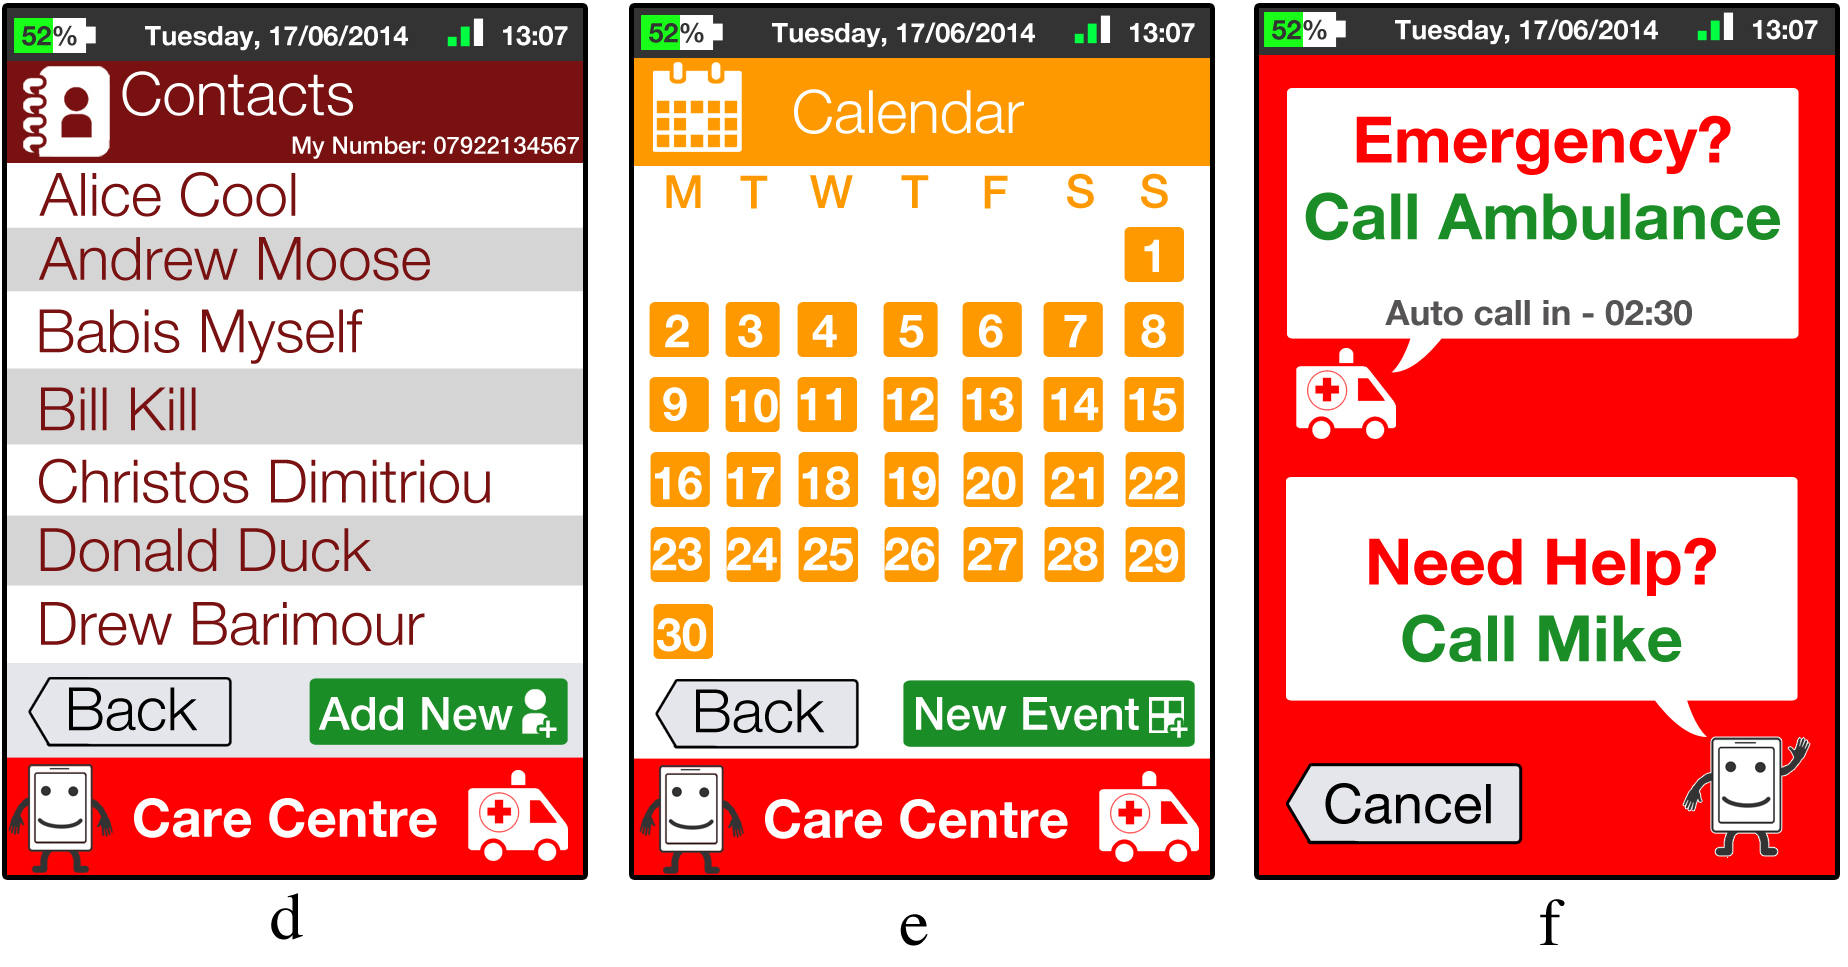 The last three prototypes images, that came out from the design phase. From left to                                                                     right: d) The contacts screen e) The calendar screen f) The care centre - emergency screen.